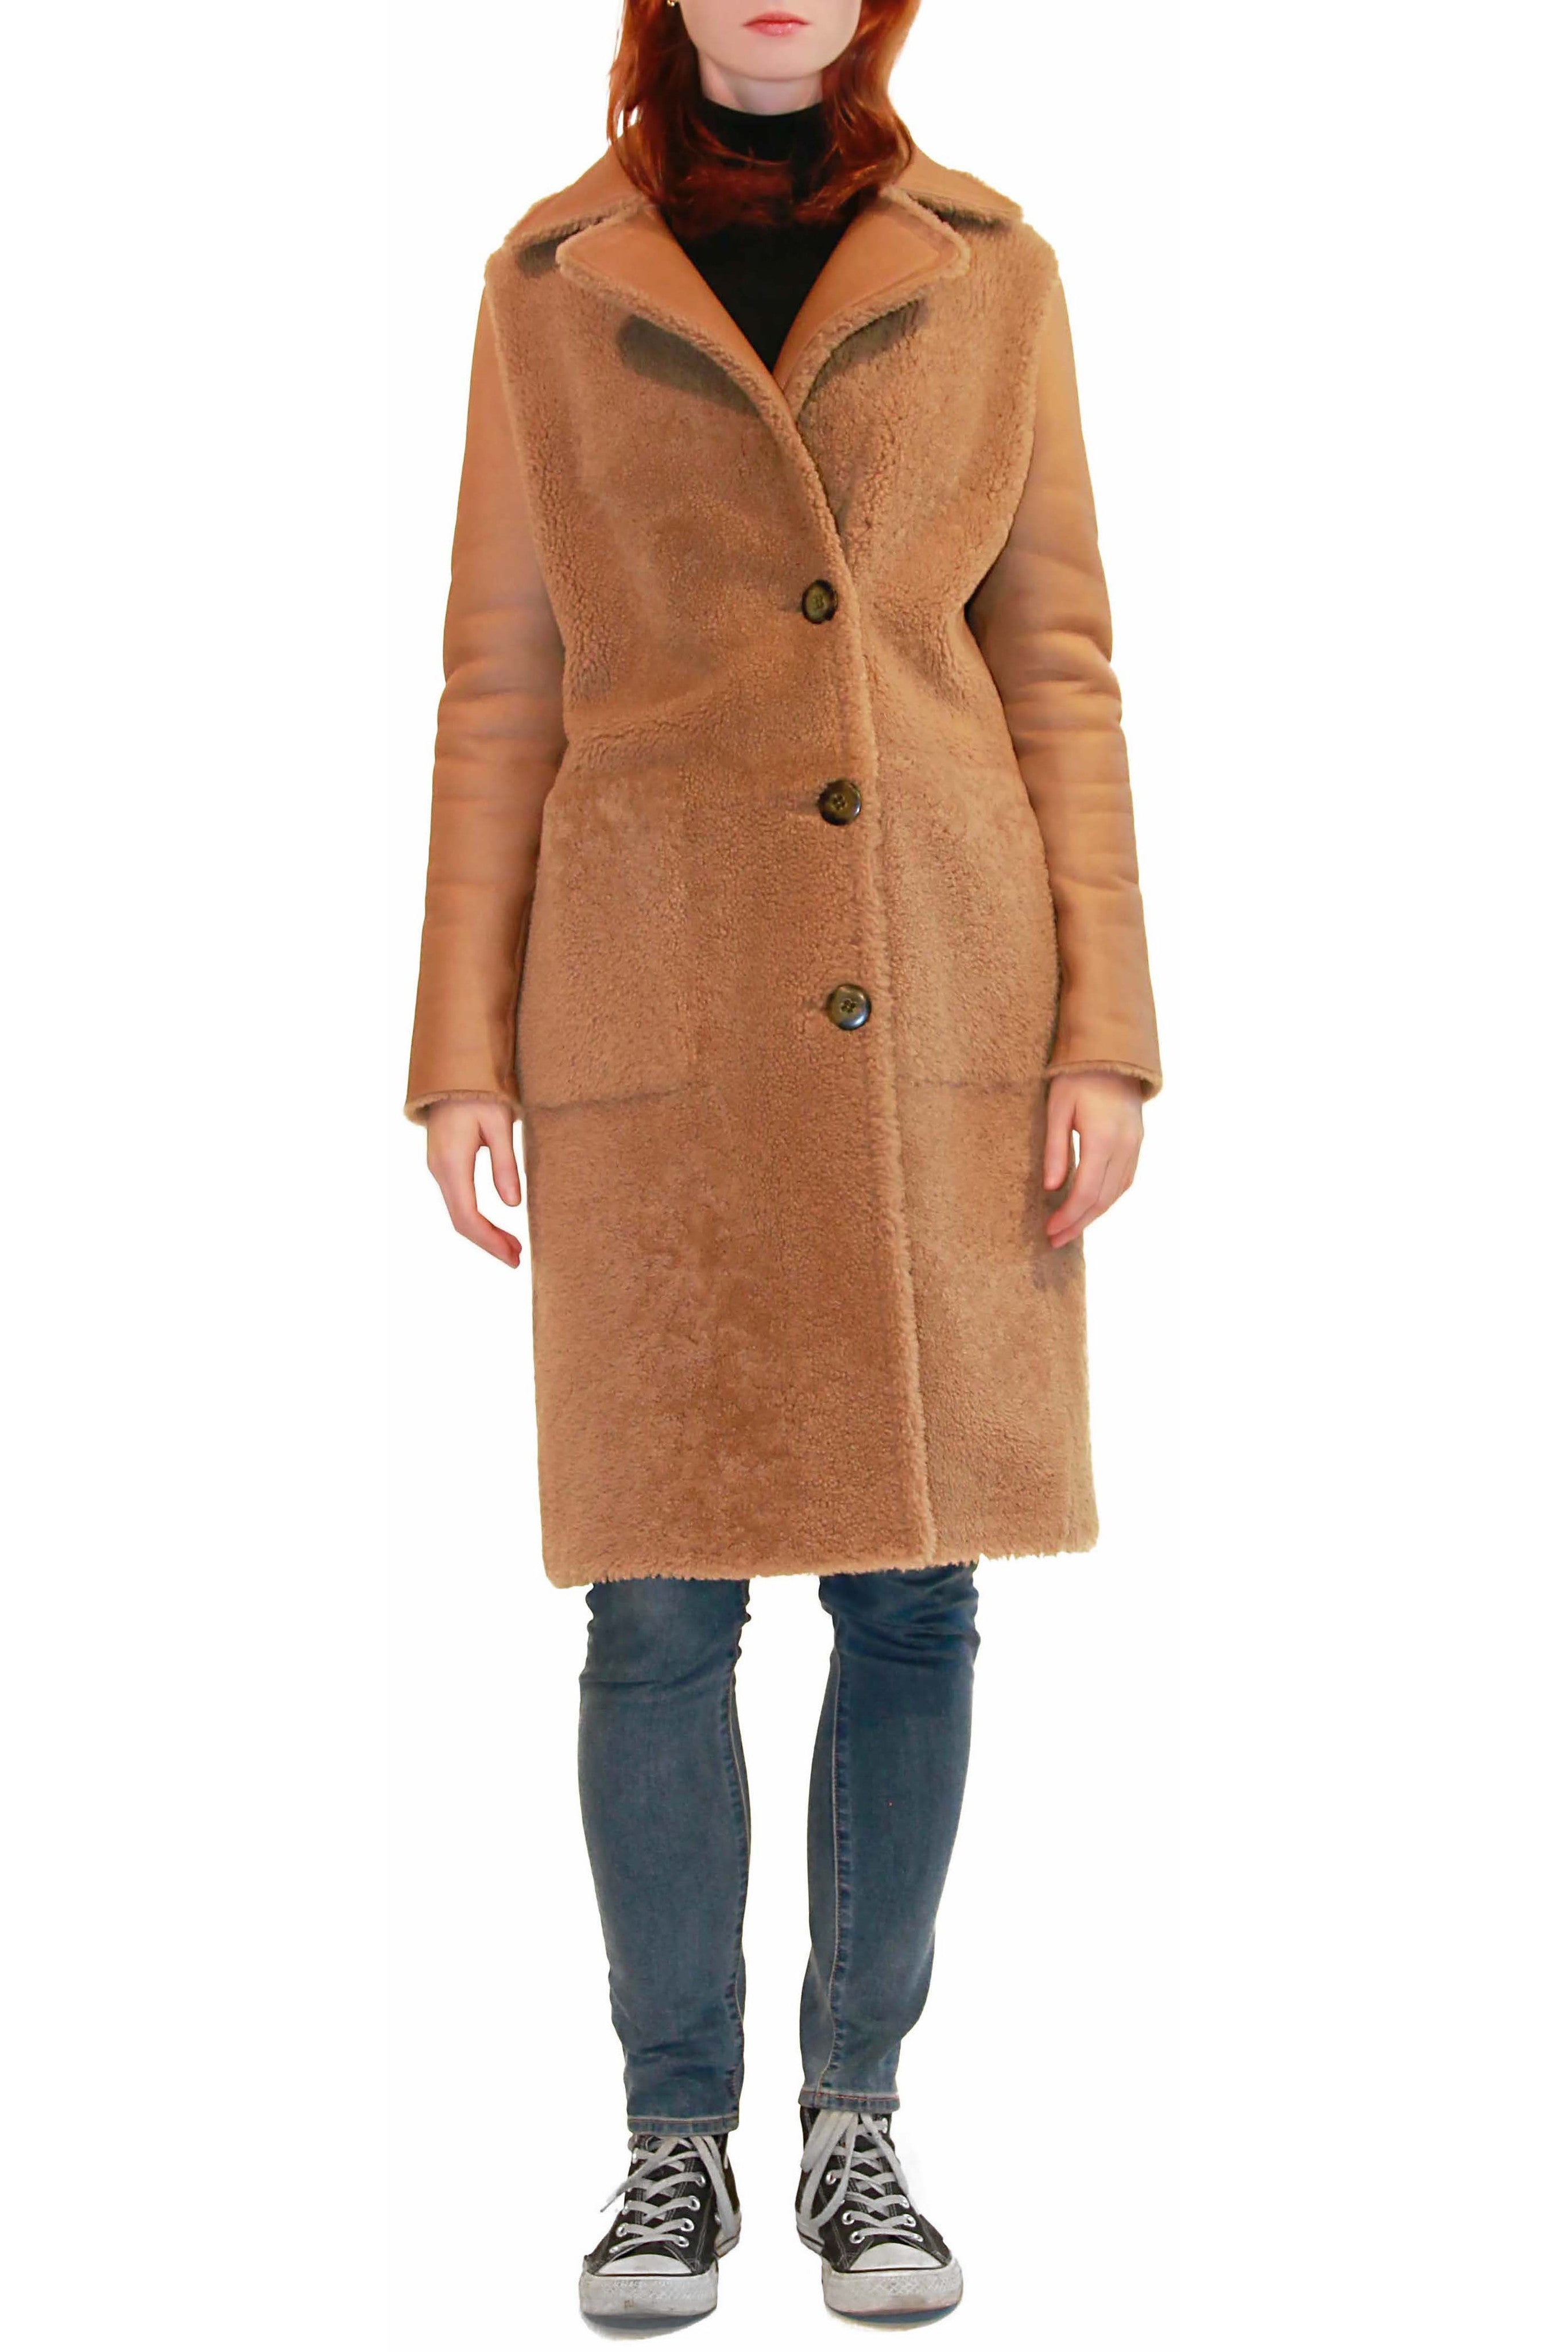 Whisky Shearling Coat with Buttons